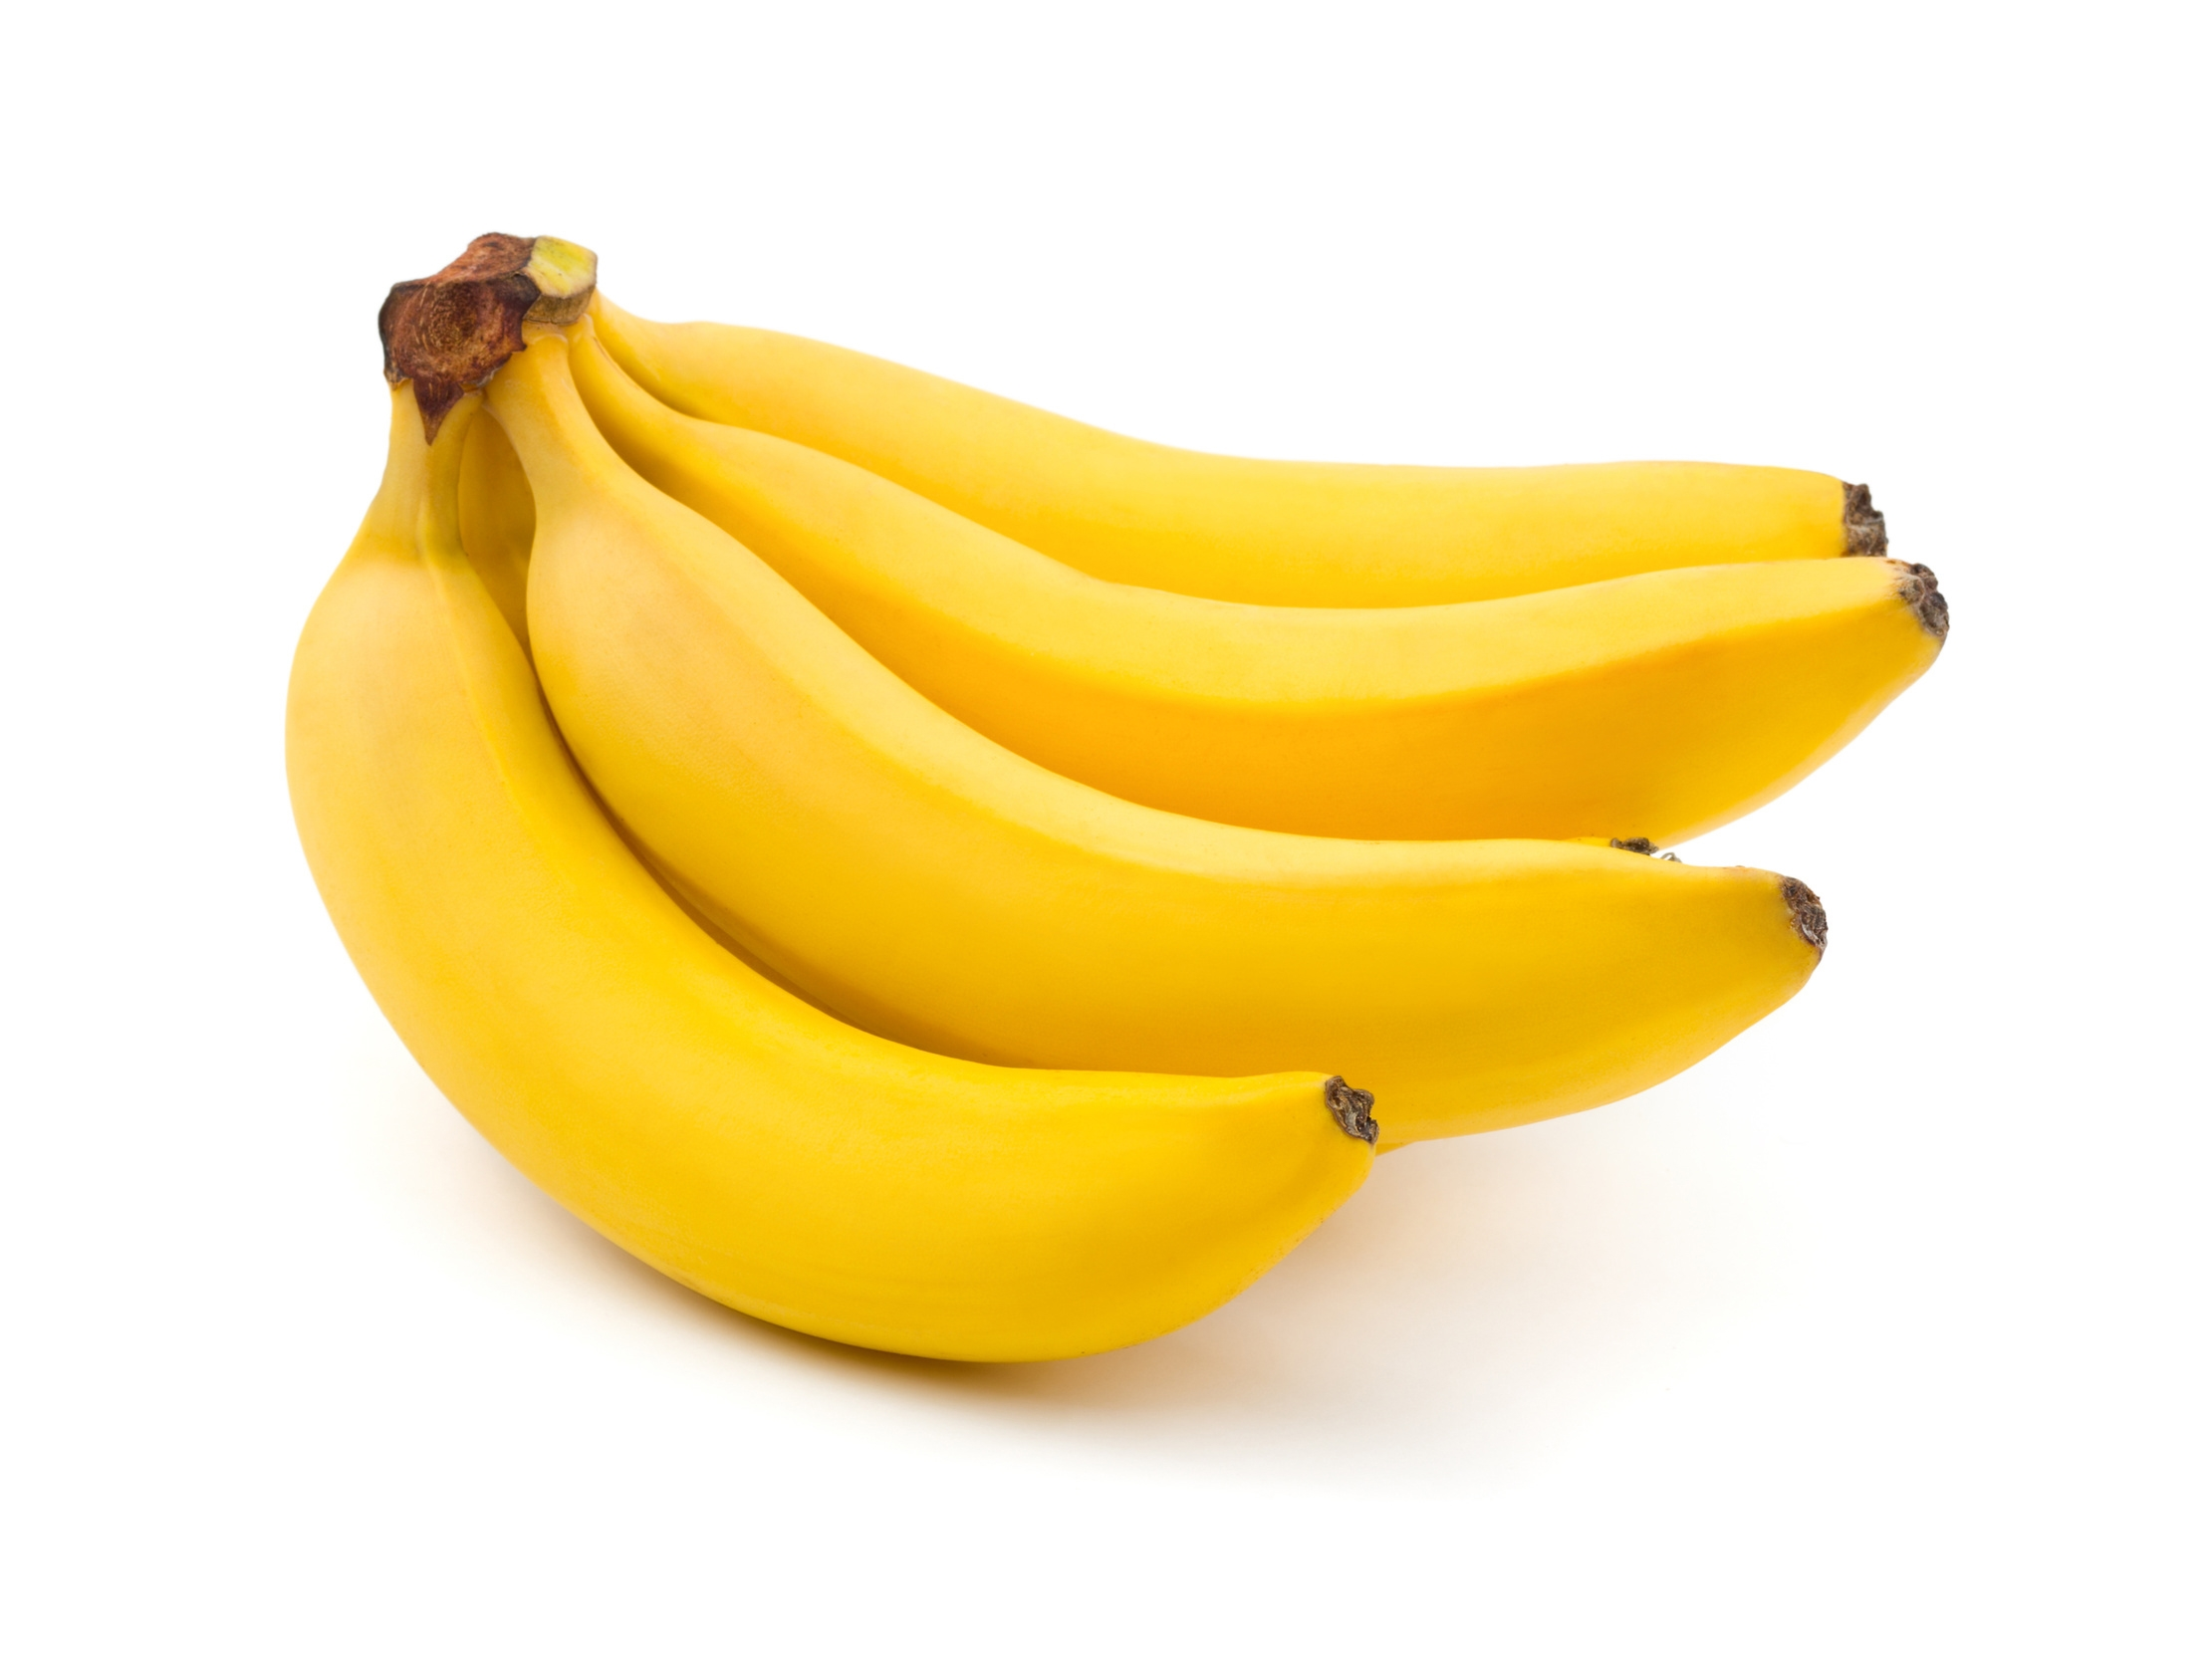 Fruits hd images - Bananas Hd Image